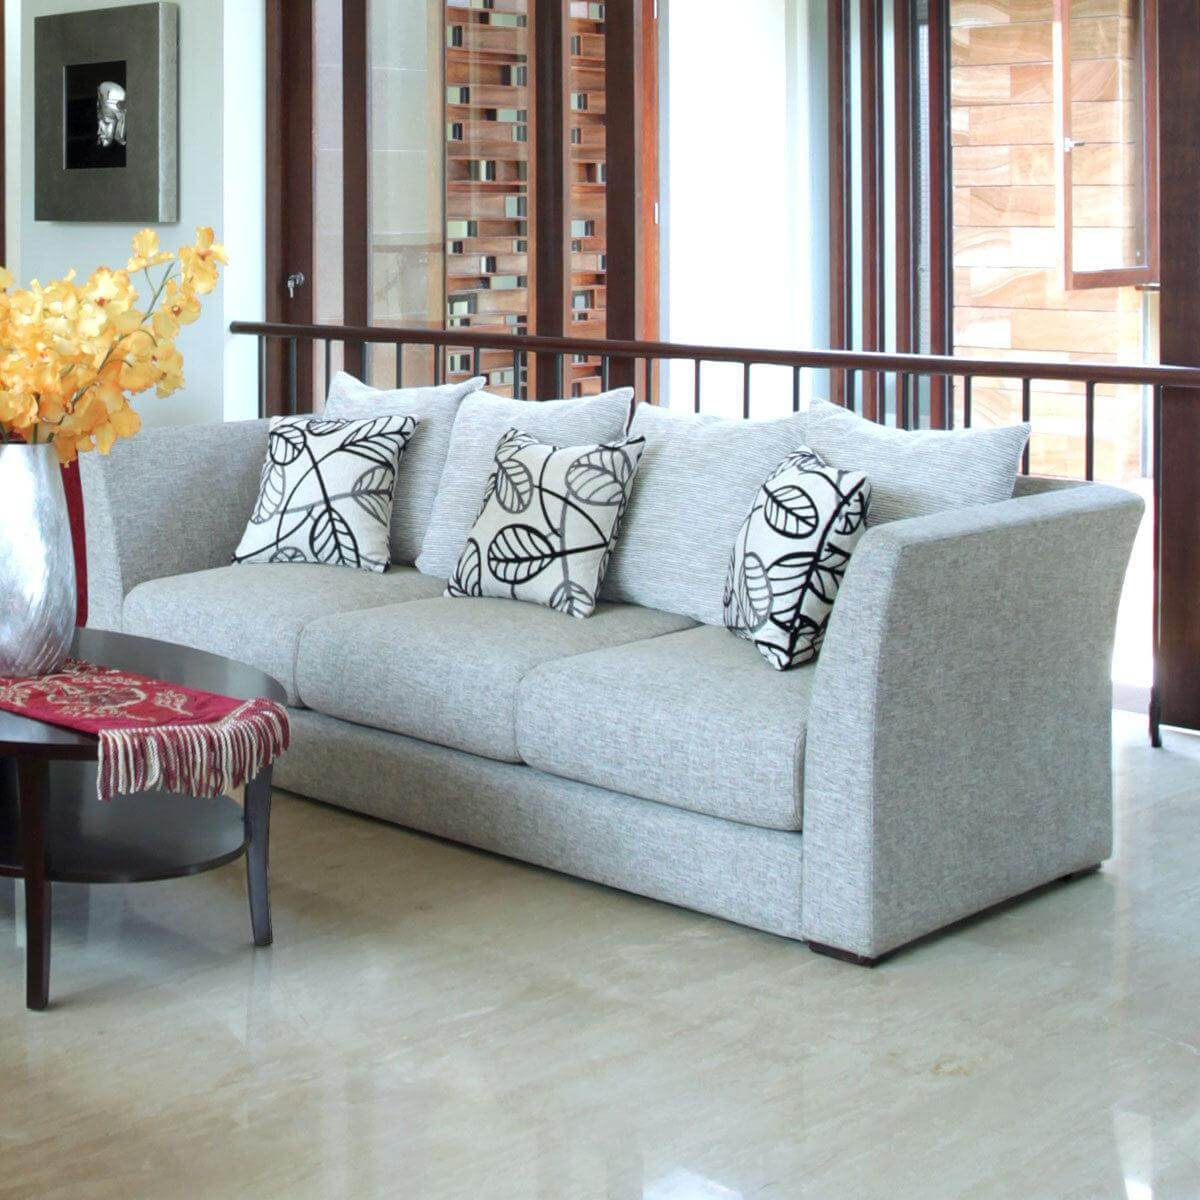 nara 3 seat elegant and simple sofa